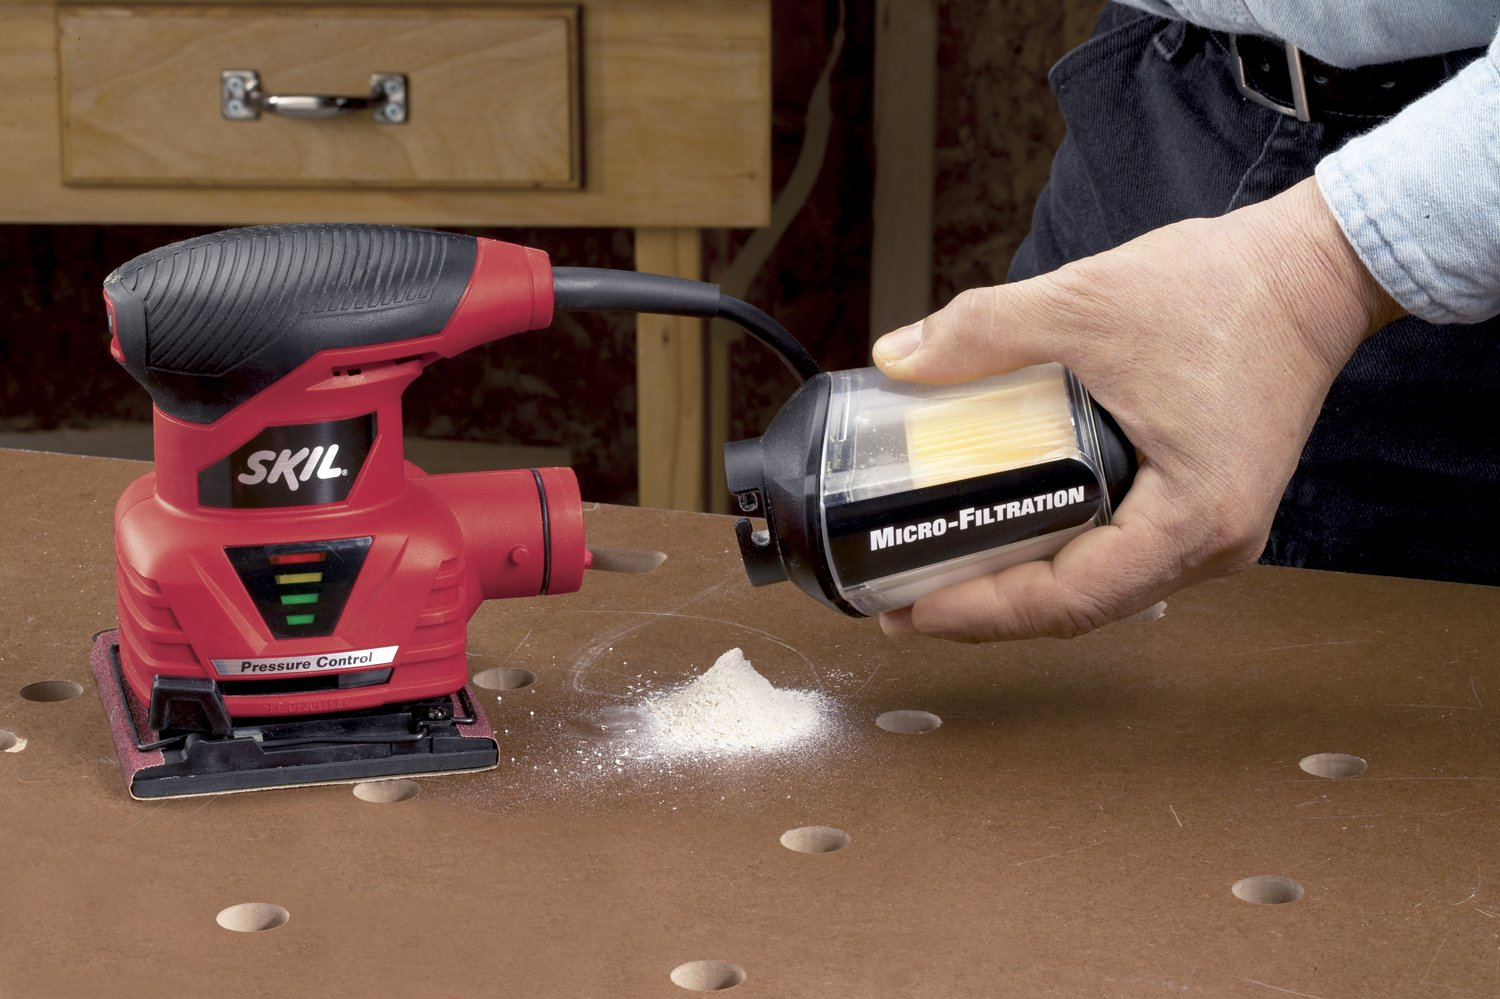 SKIL 7292-02 2.0 Amp 1/4 Sheet Palm Sander with Pressure Control by Skil (Image #4)